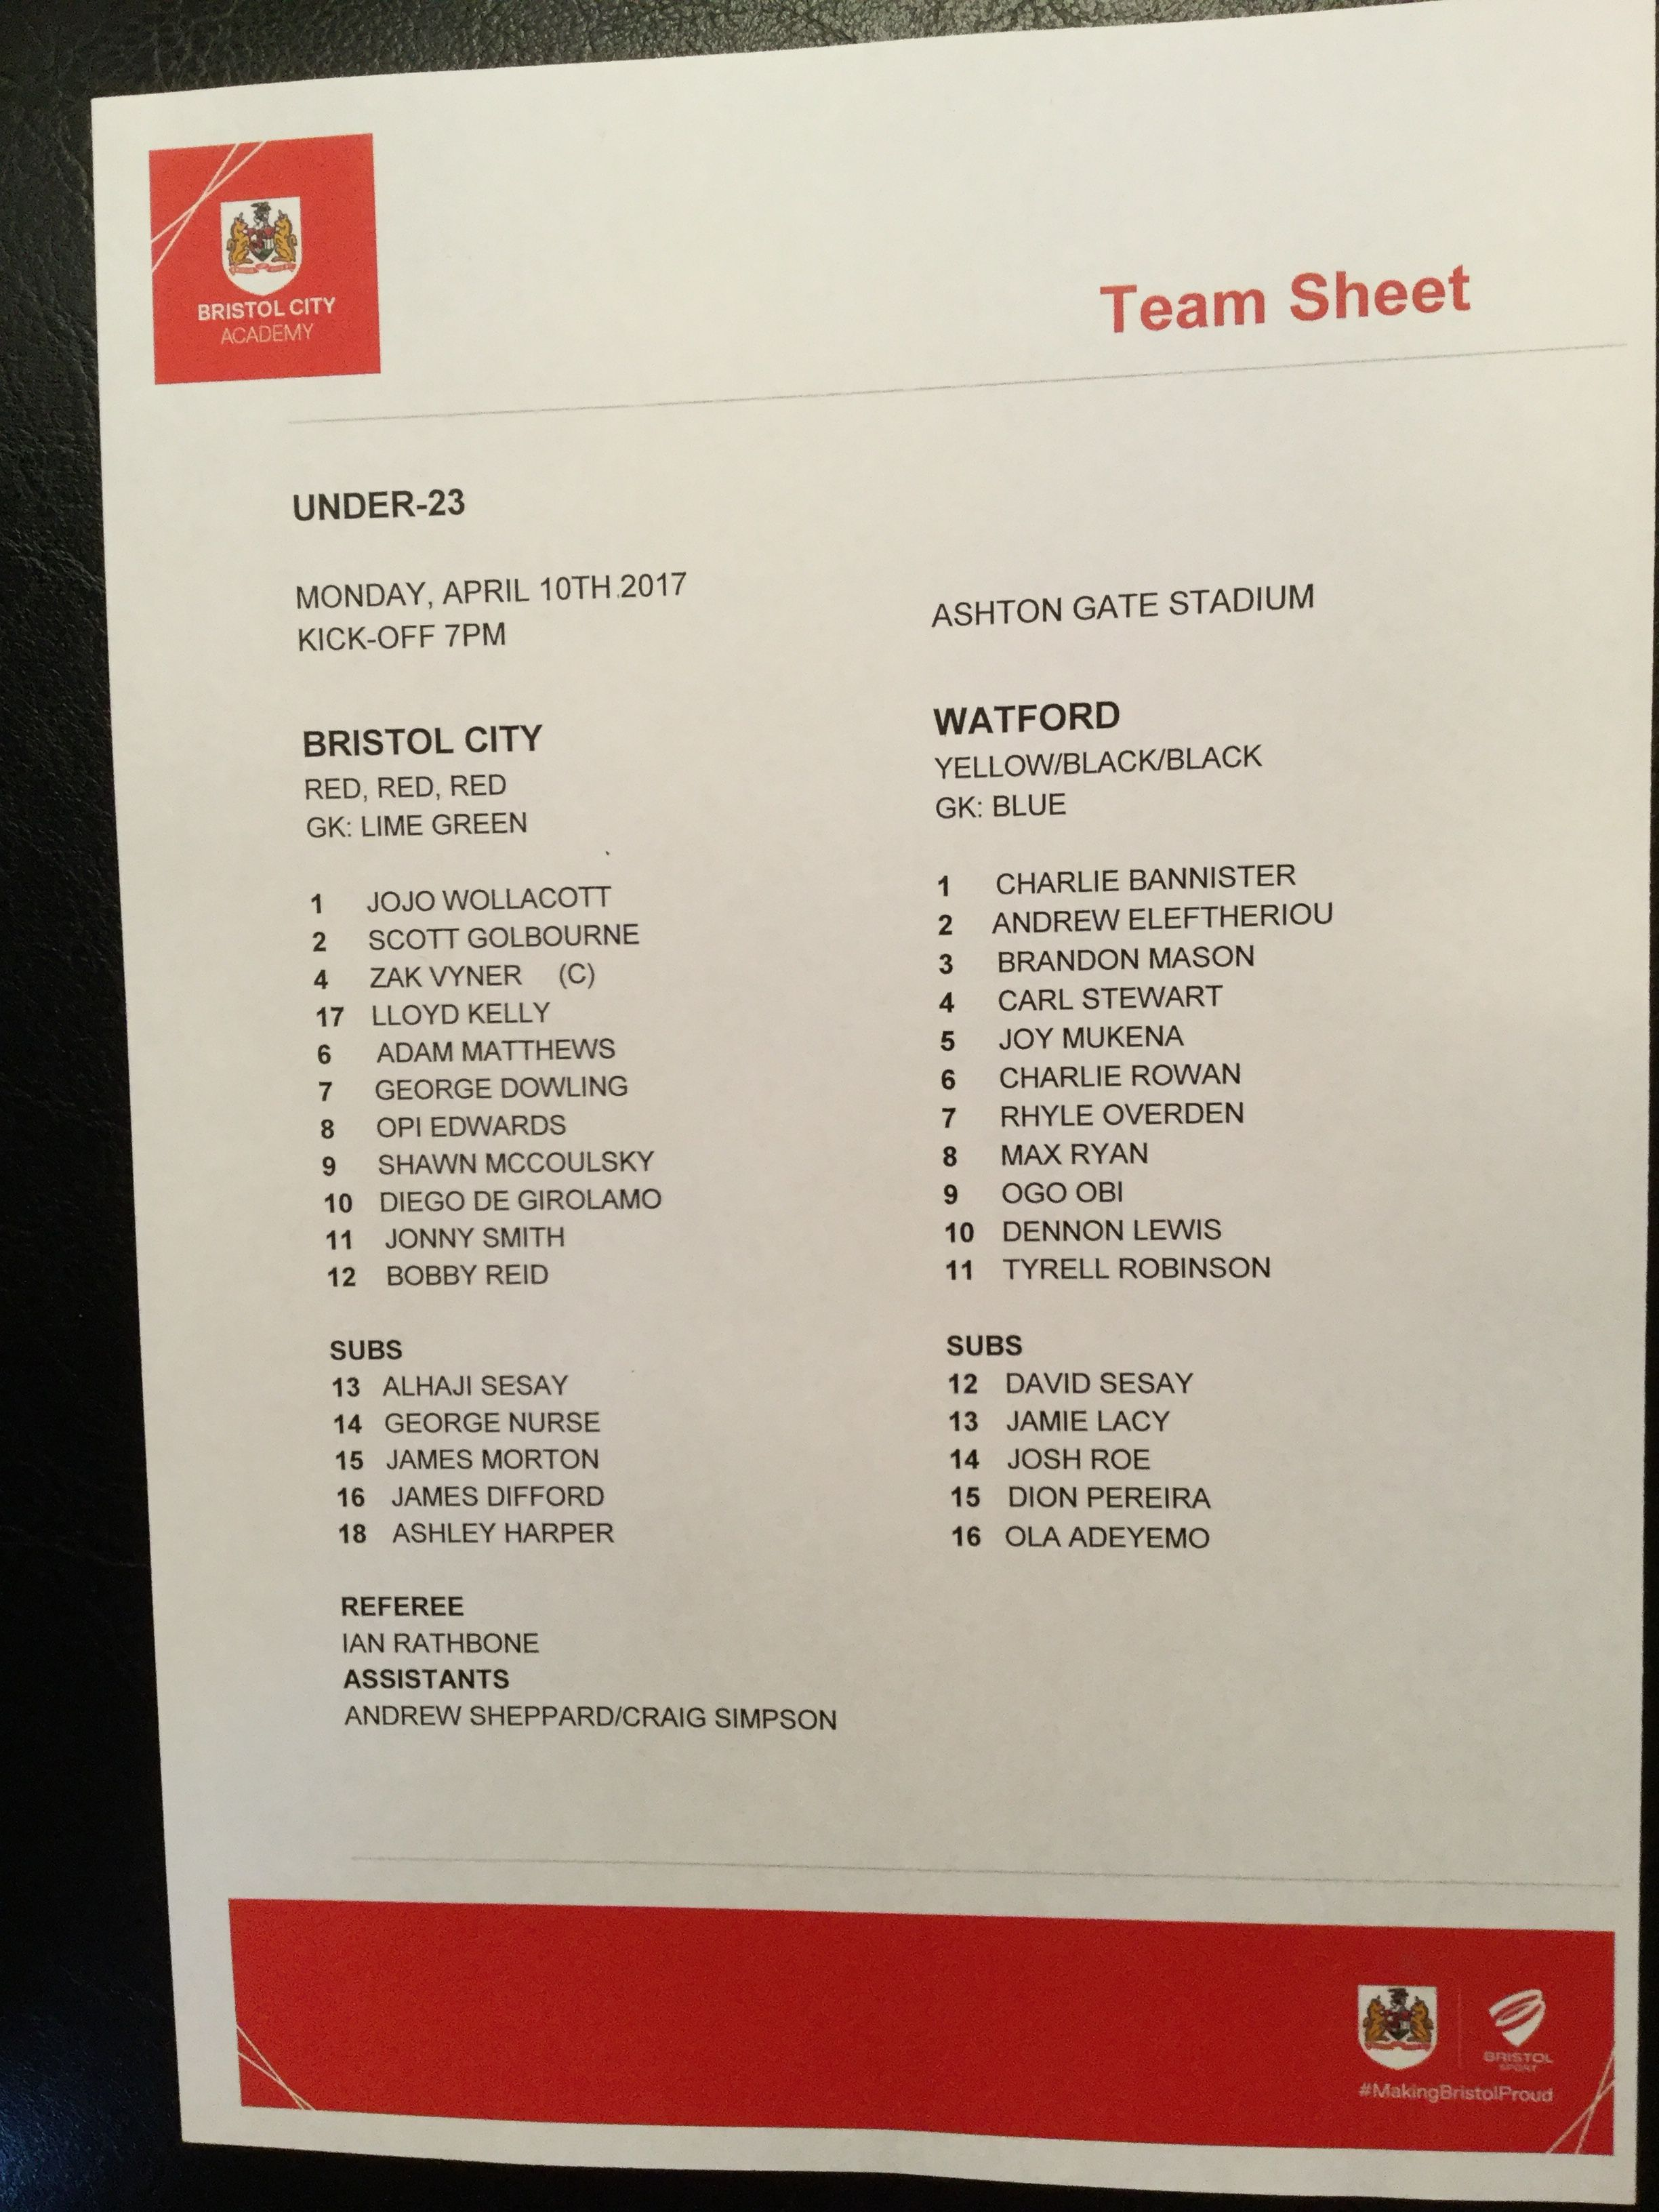 Bristol City v Watford 10-04-17 Team Sheet